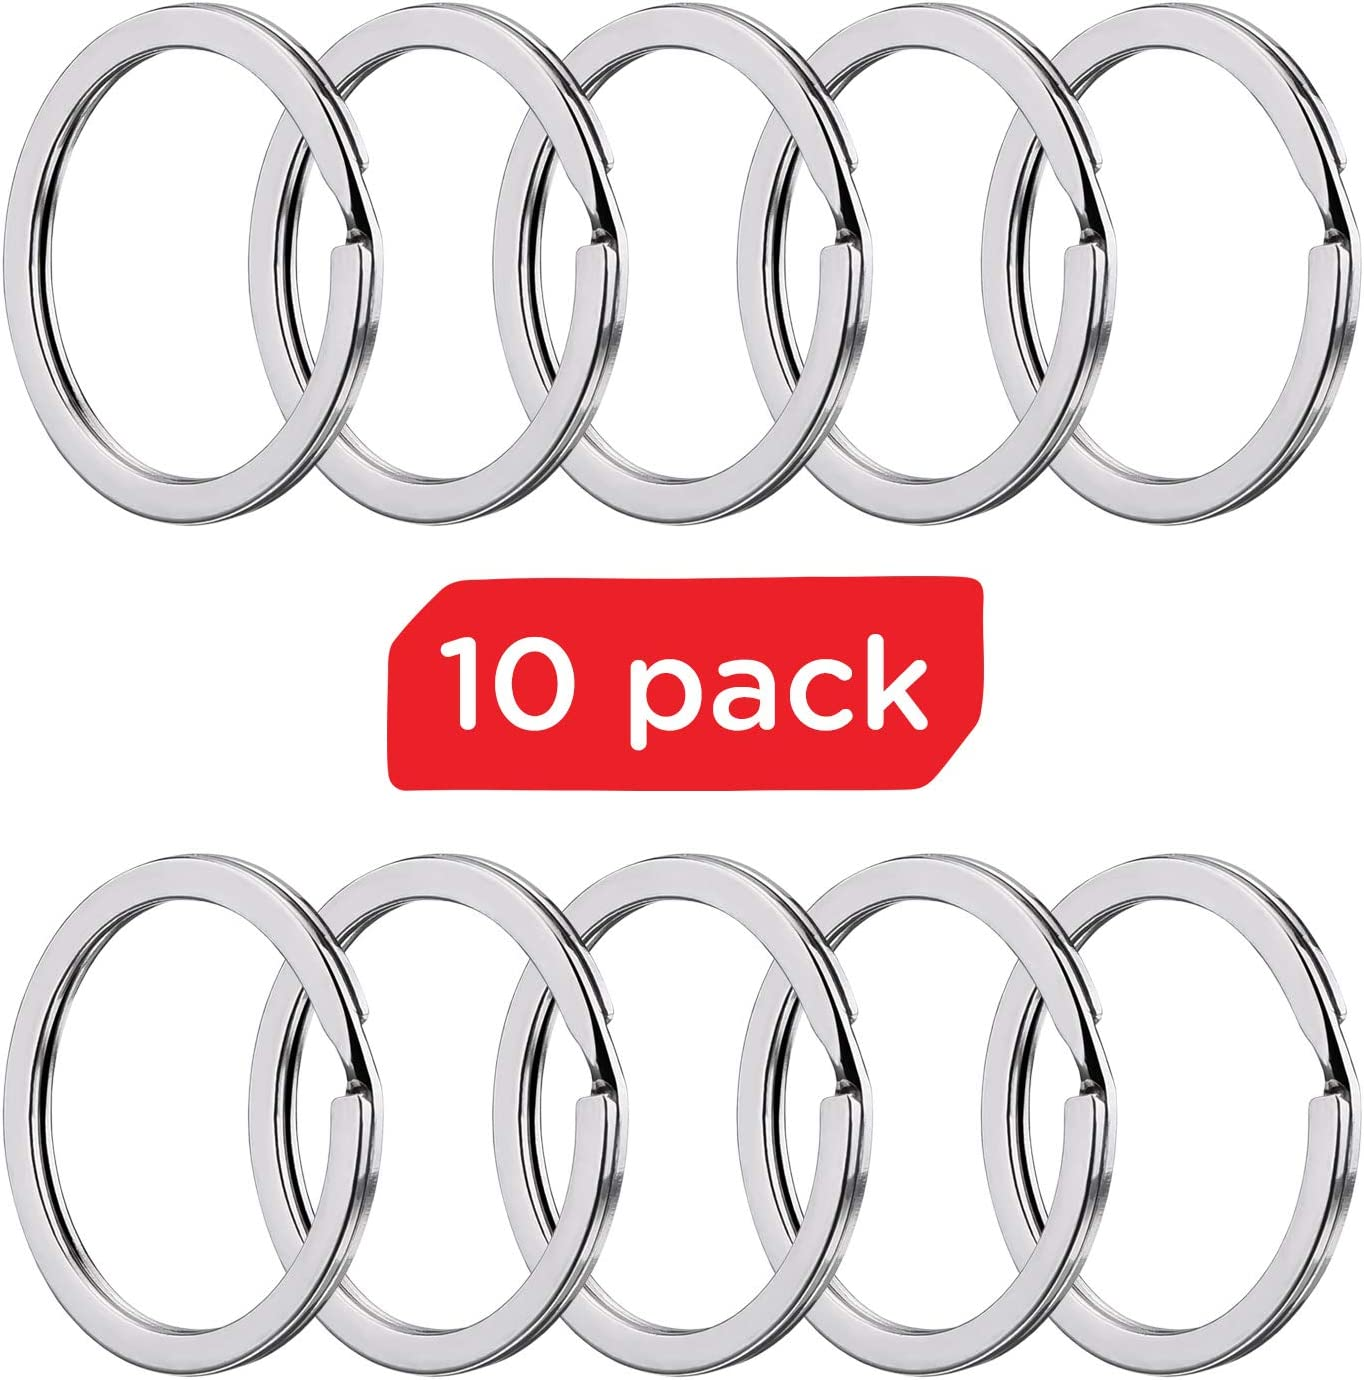 Keyrings for Office Crafts Home Organization Silver Silipac Metal Key Rings Chain Bulk-Heavy Duty Stainless Steel Split Car Loops Flat Ring Nickel-Plated Holder Round Nickel Plated 10 pcs Car